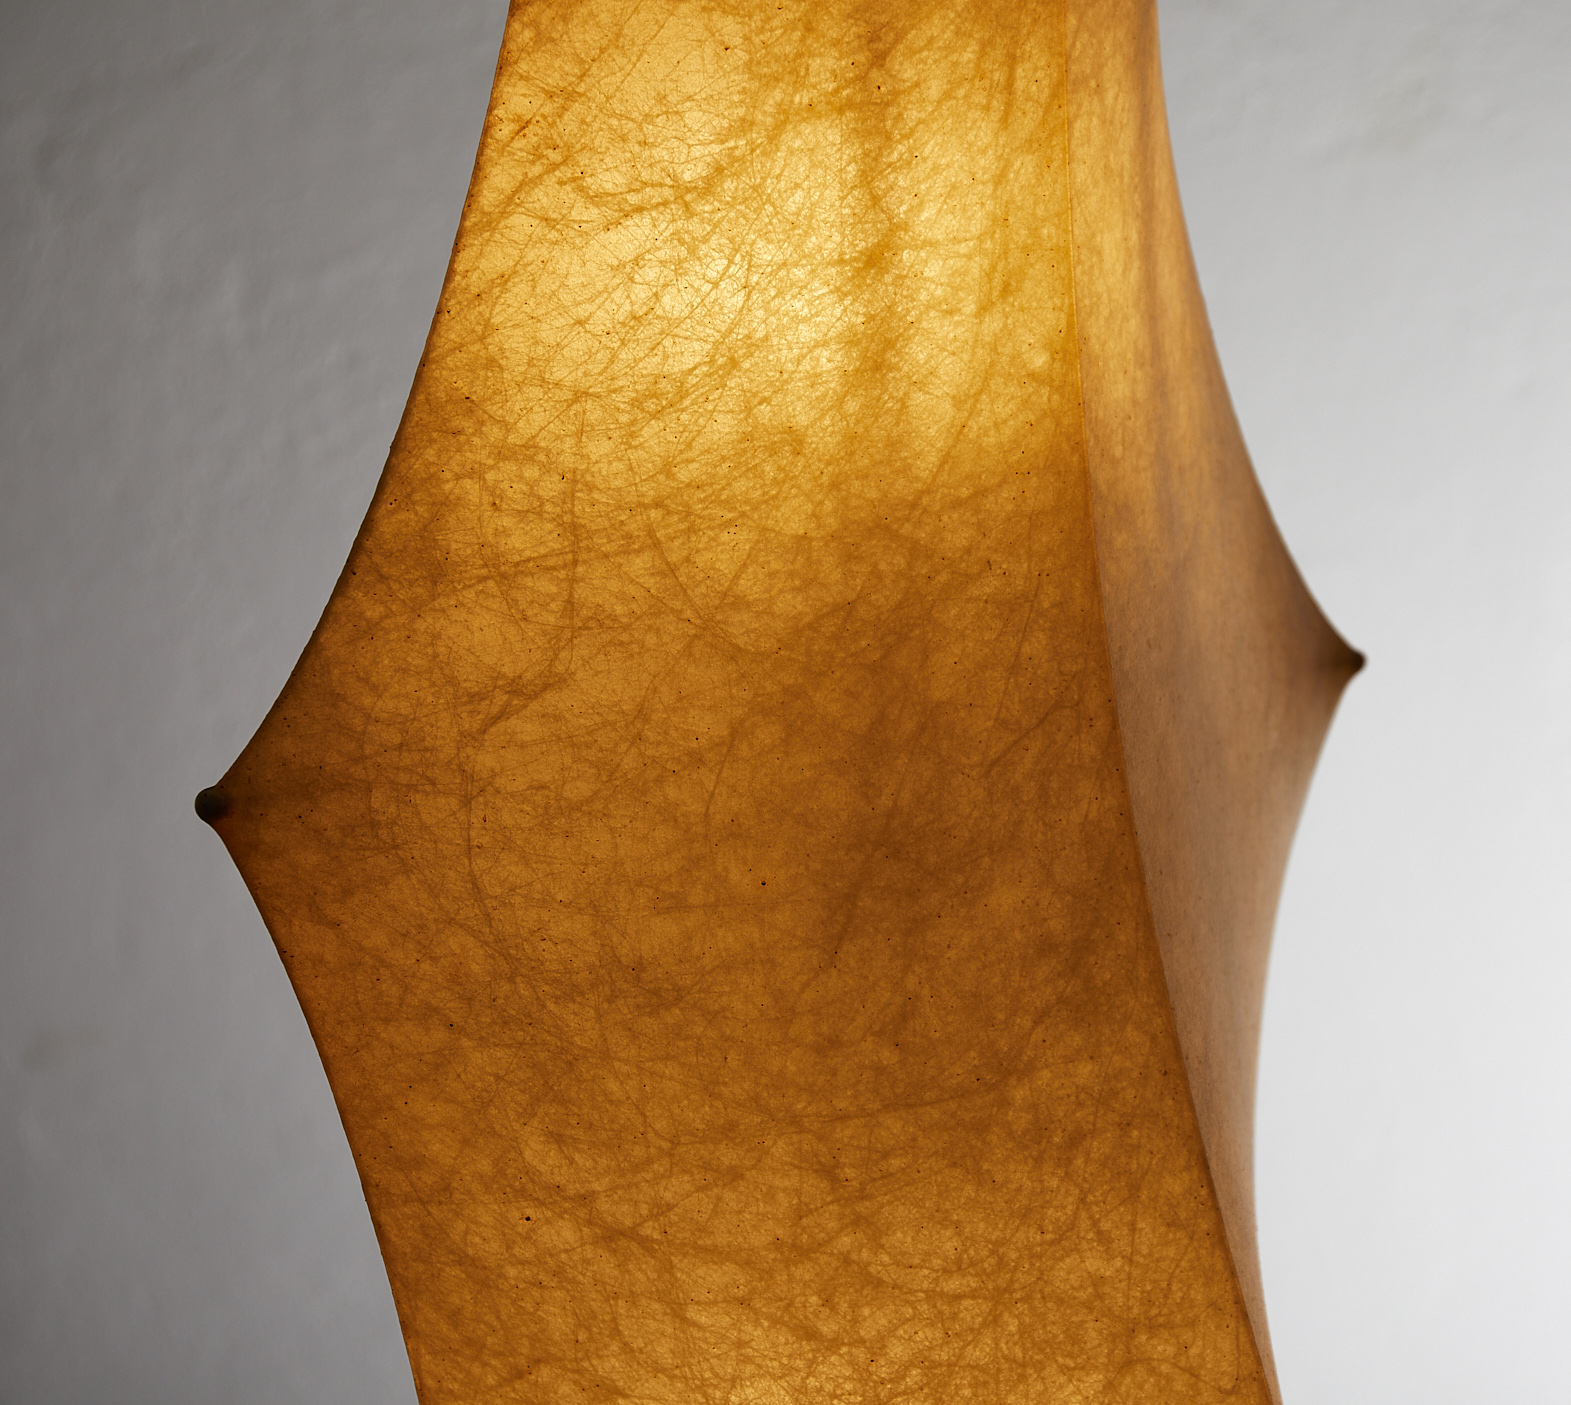 fantasma-piccolo-resin-cocoon-floor-lamp-by-tobia-scarpa-for-flos-1963-image-07